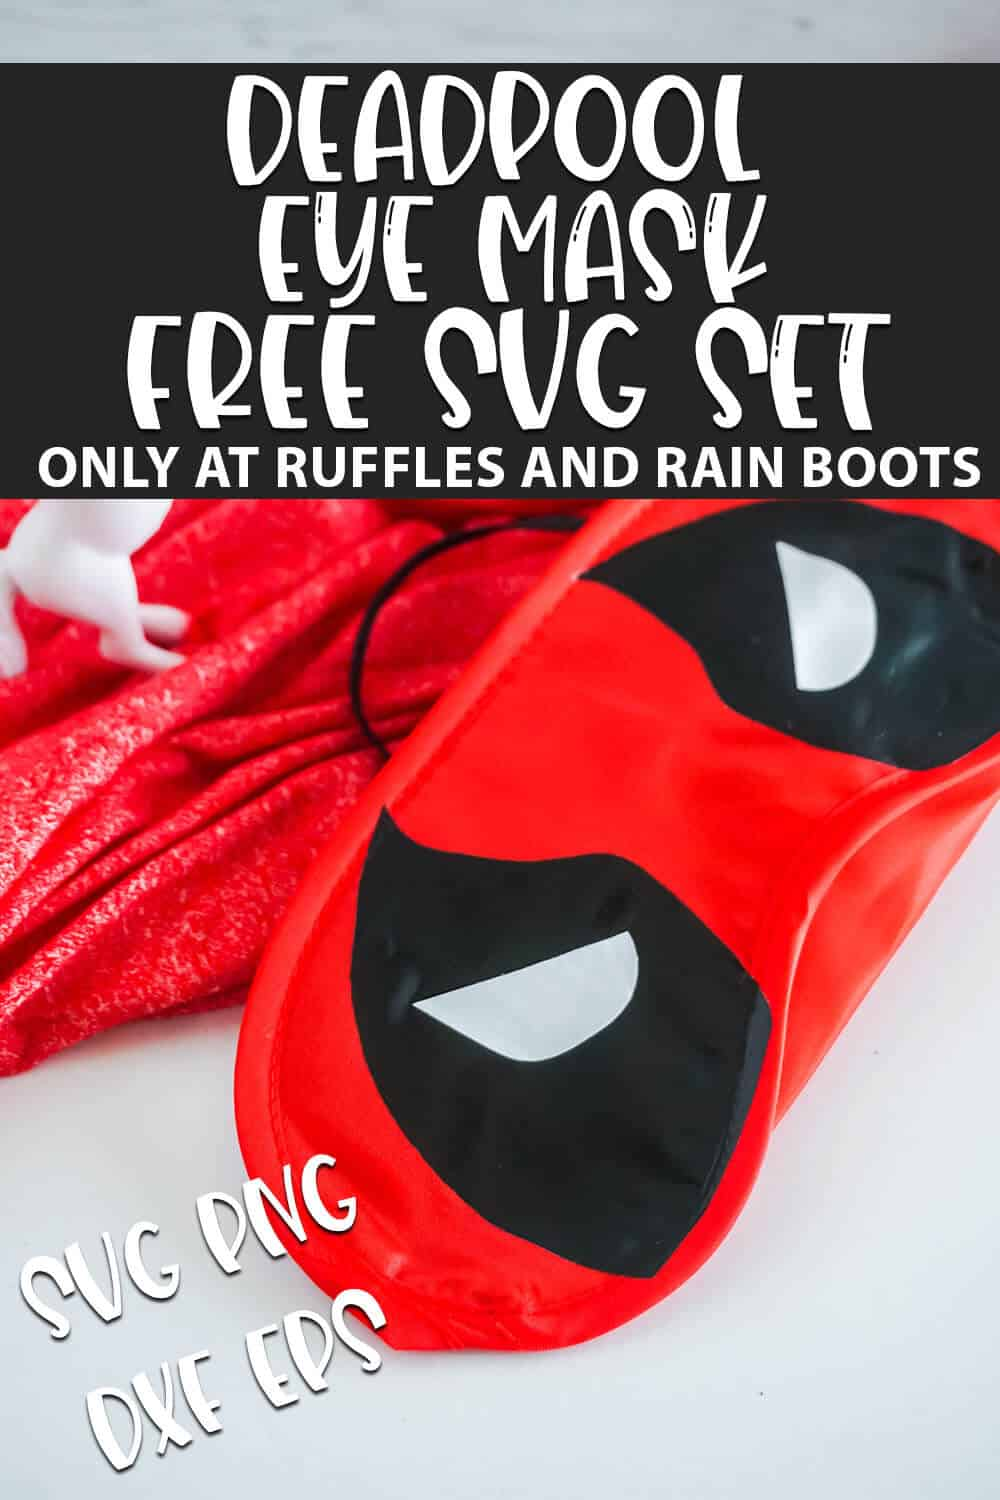 Deadpool Eye Mask cut file set for cricut or silhouette with text which reads deadpool eye mask free svg set svg png dxf eps